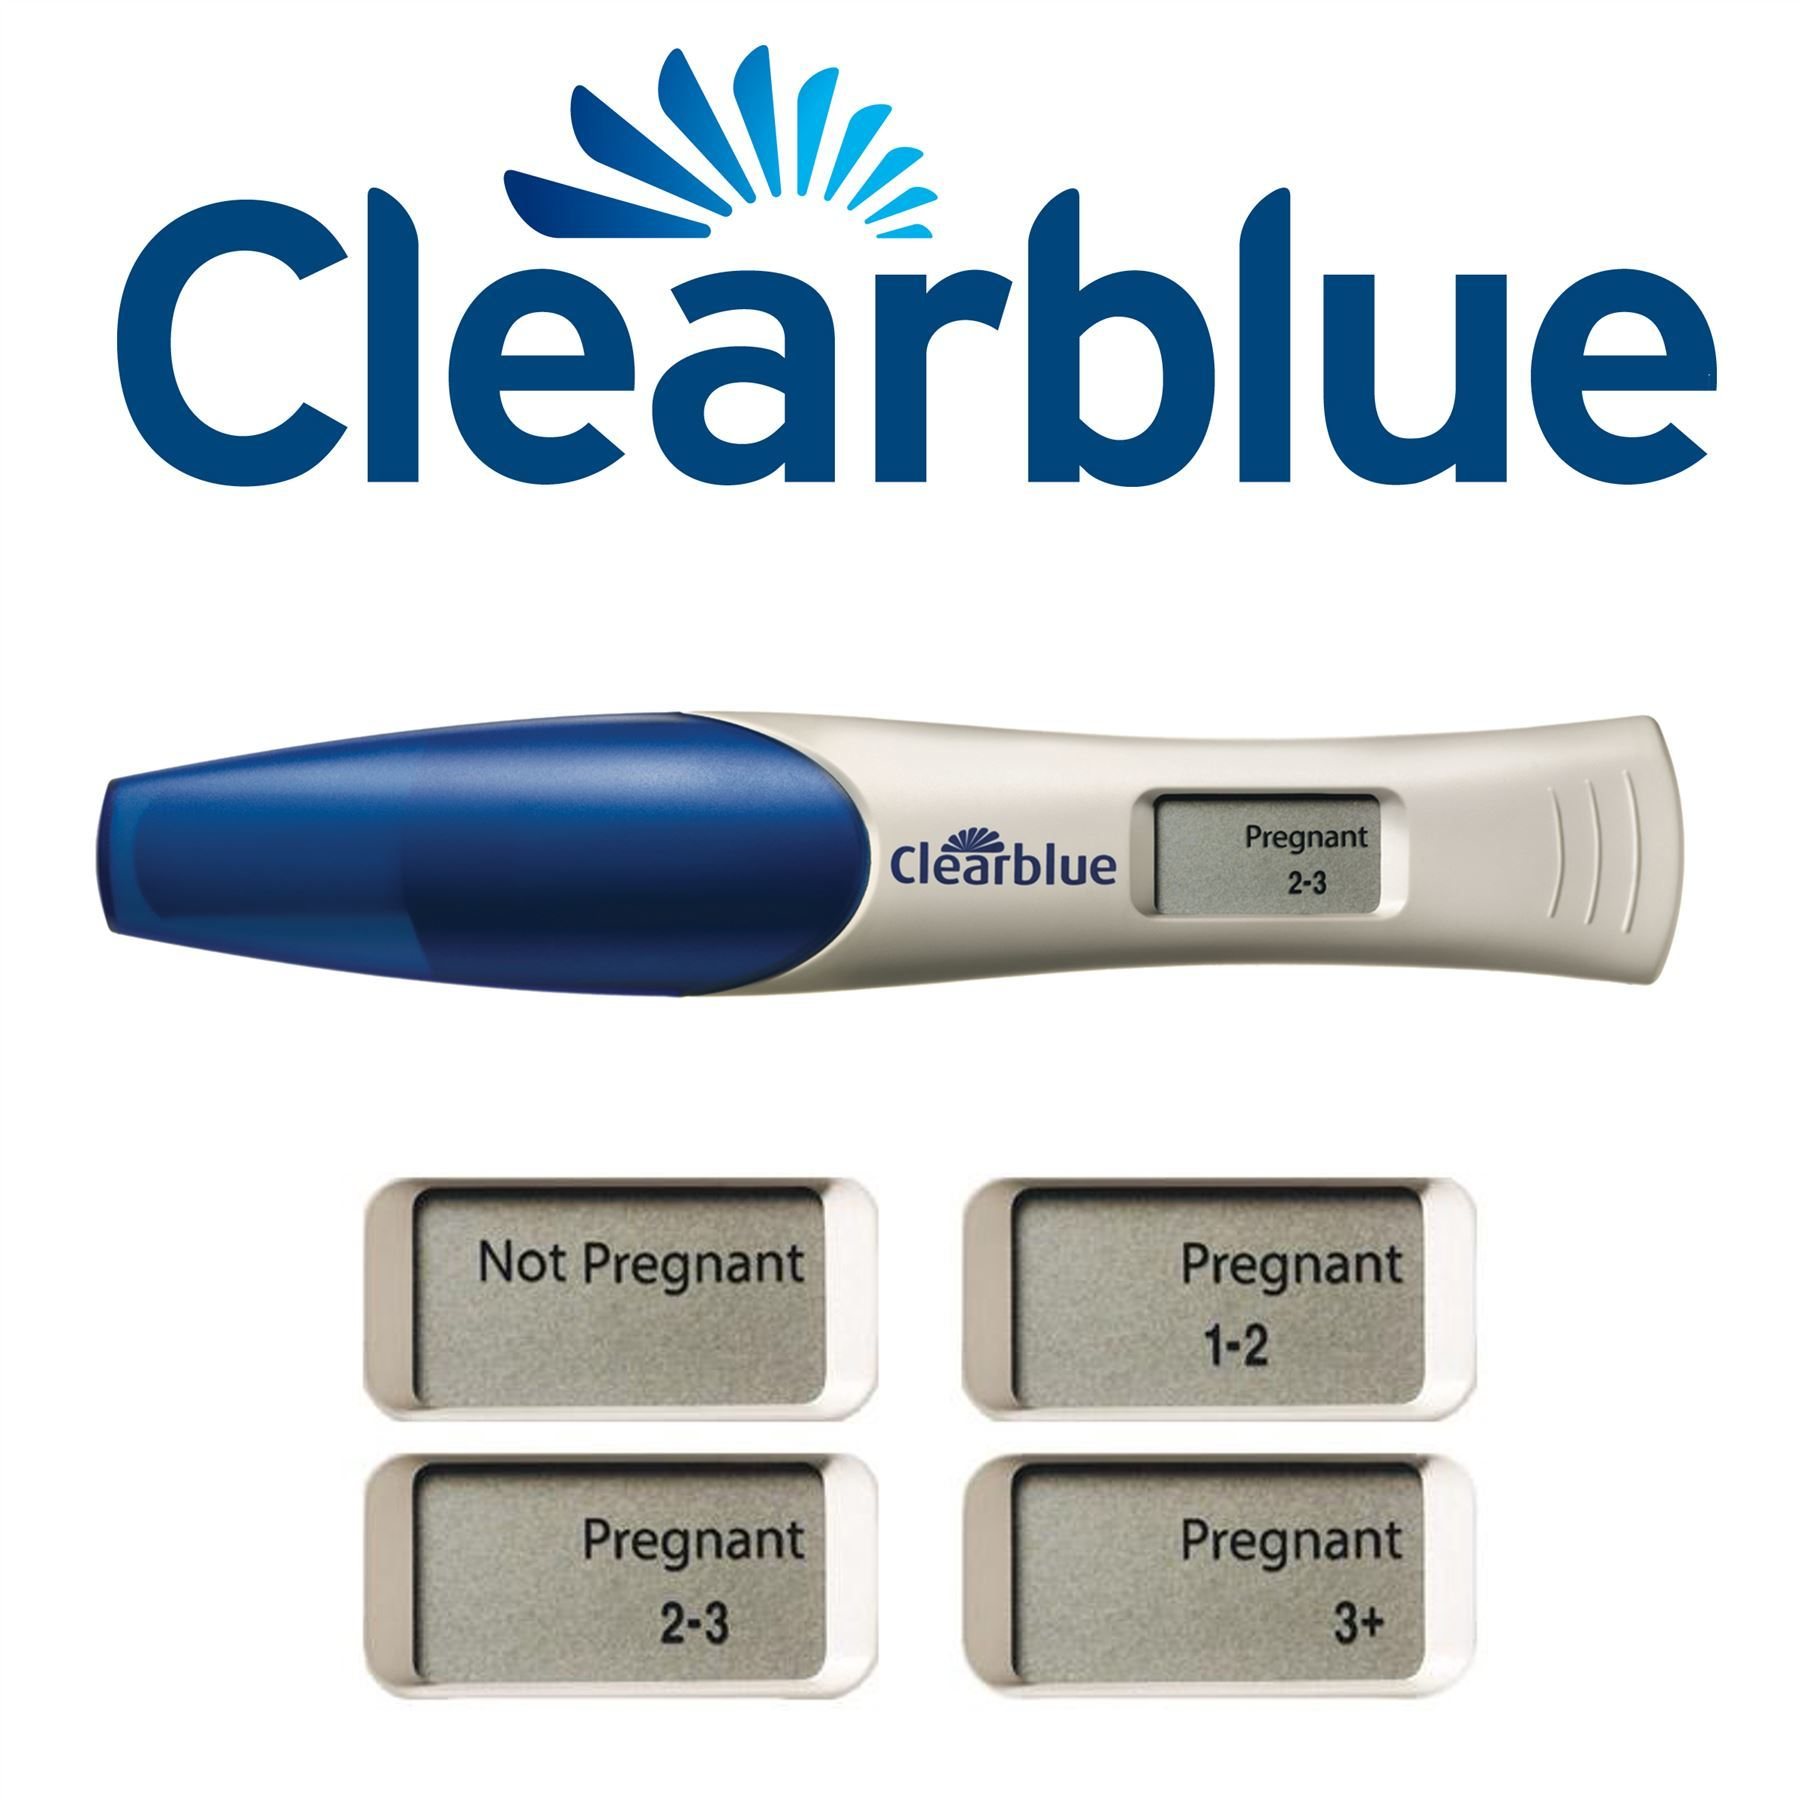 clearblue test says 1 2 weeks pregnant